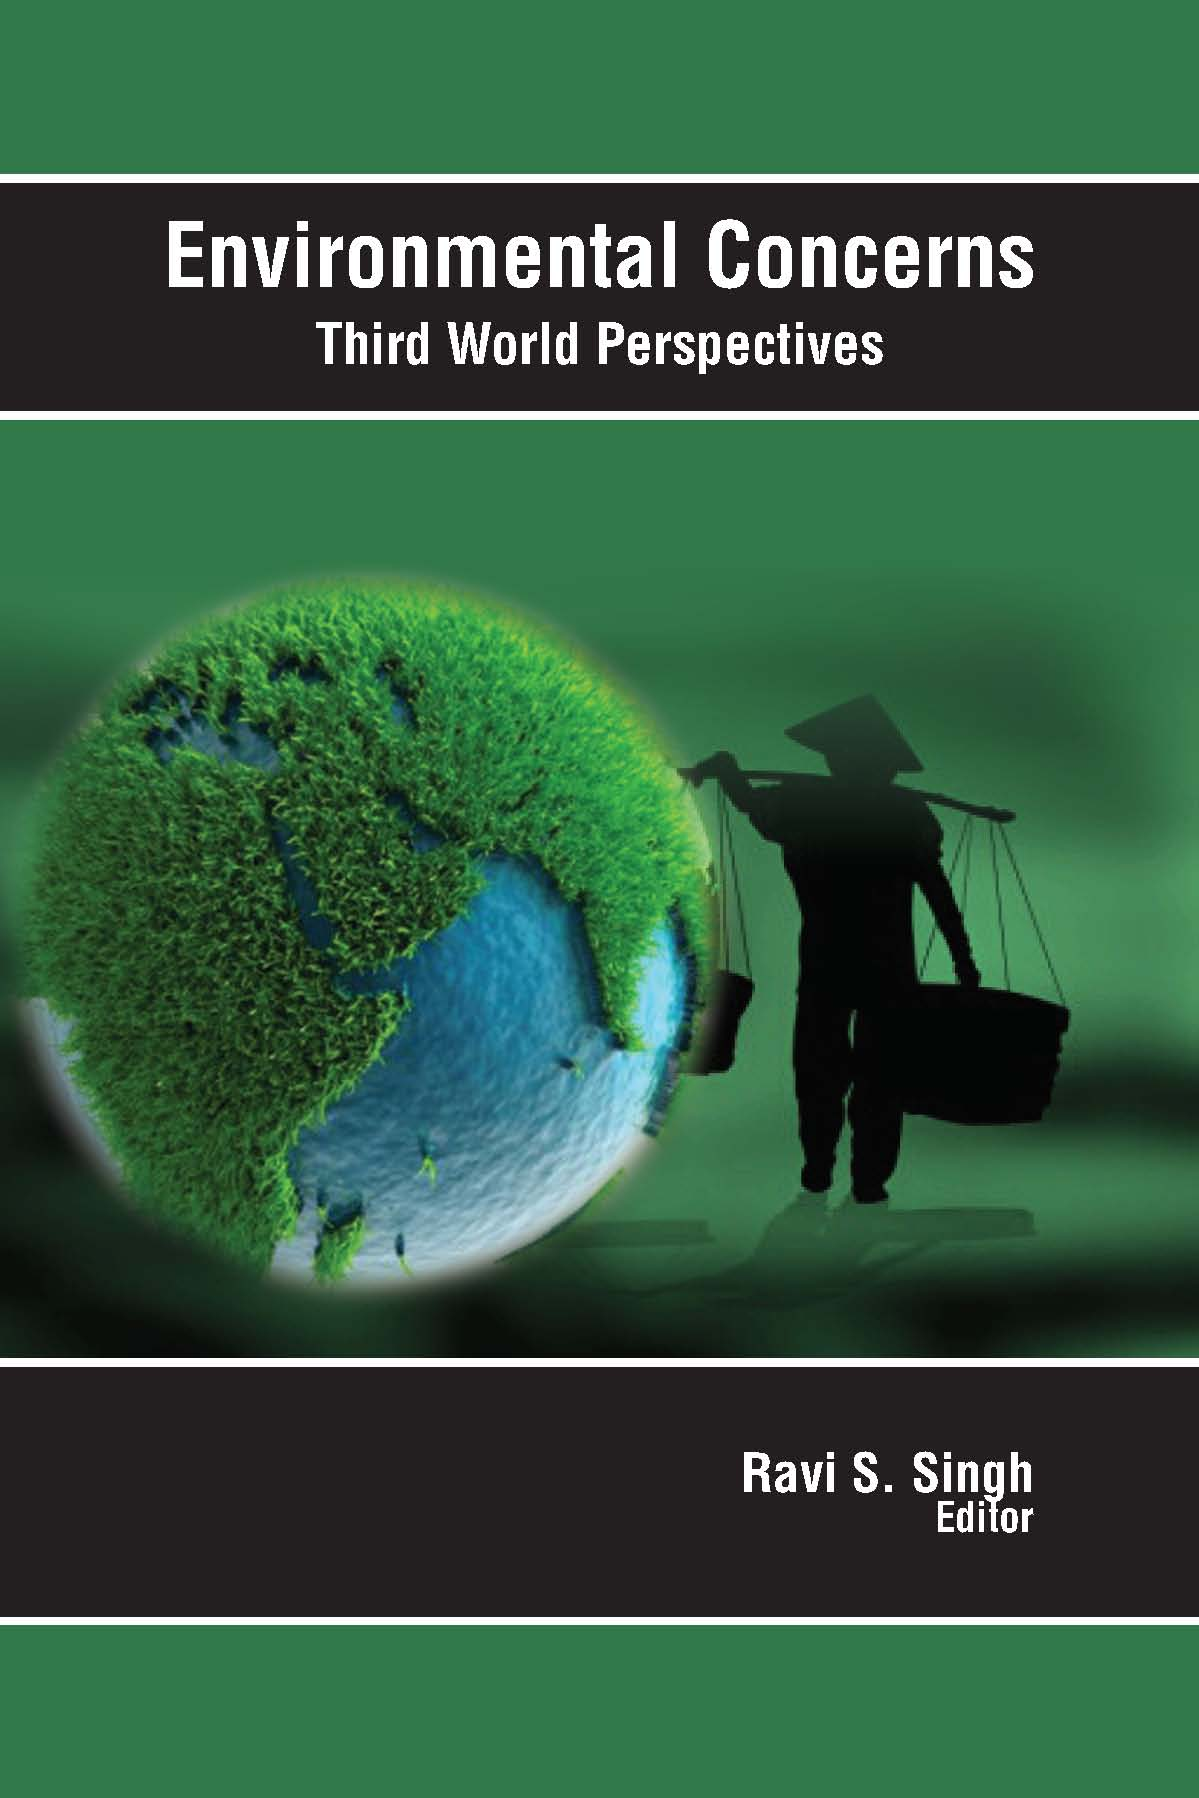 Environmental Concerns : Third World Perspectives